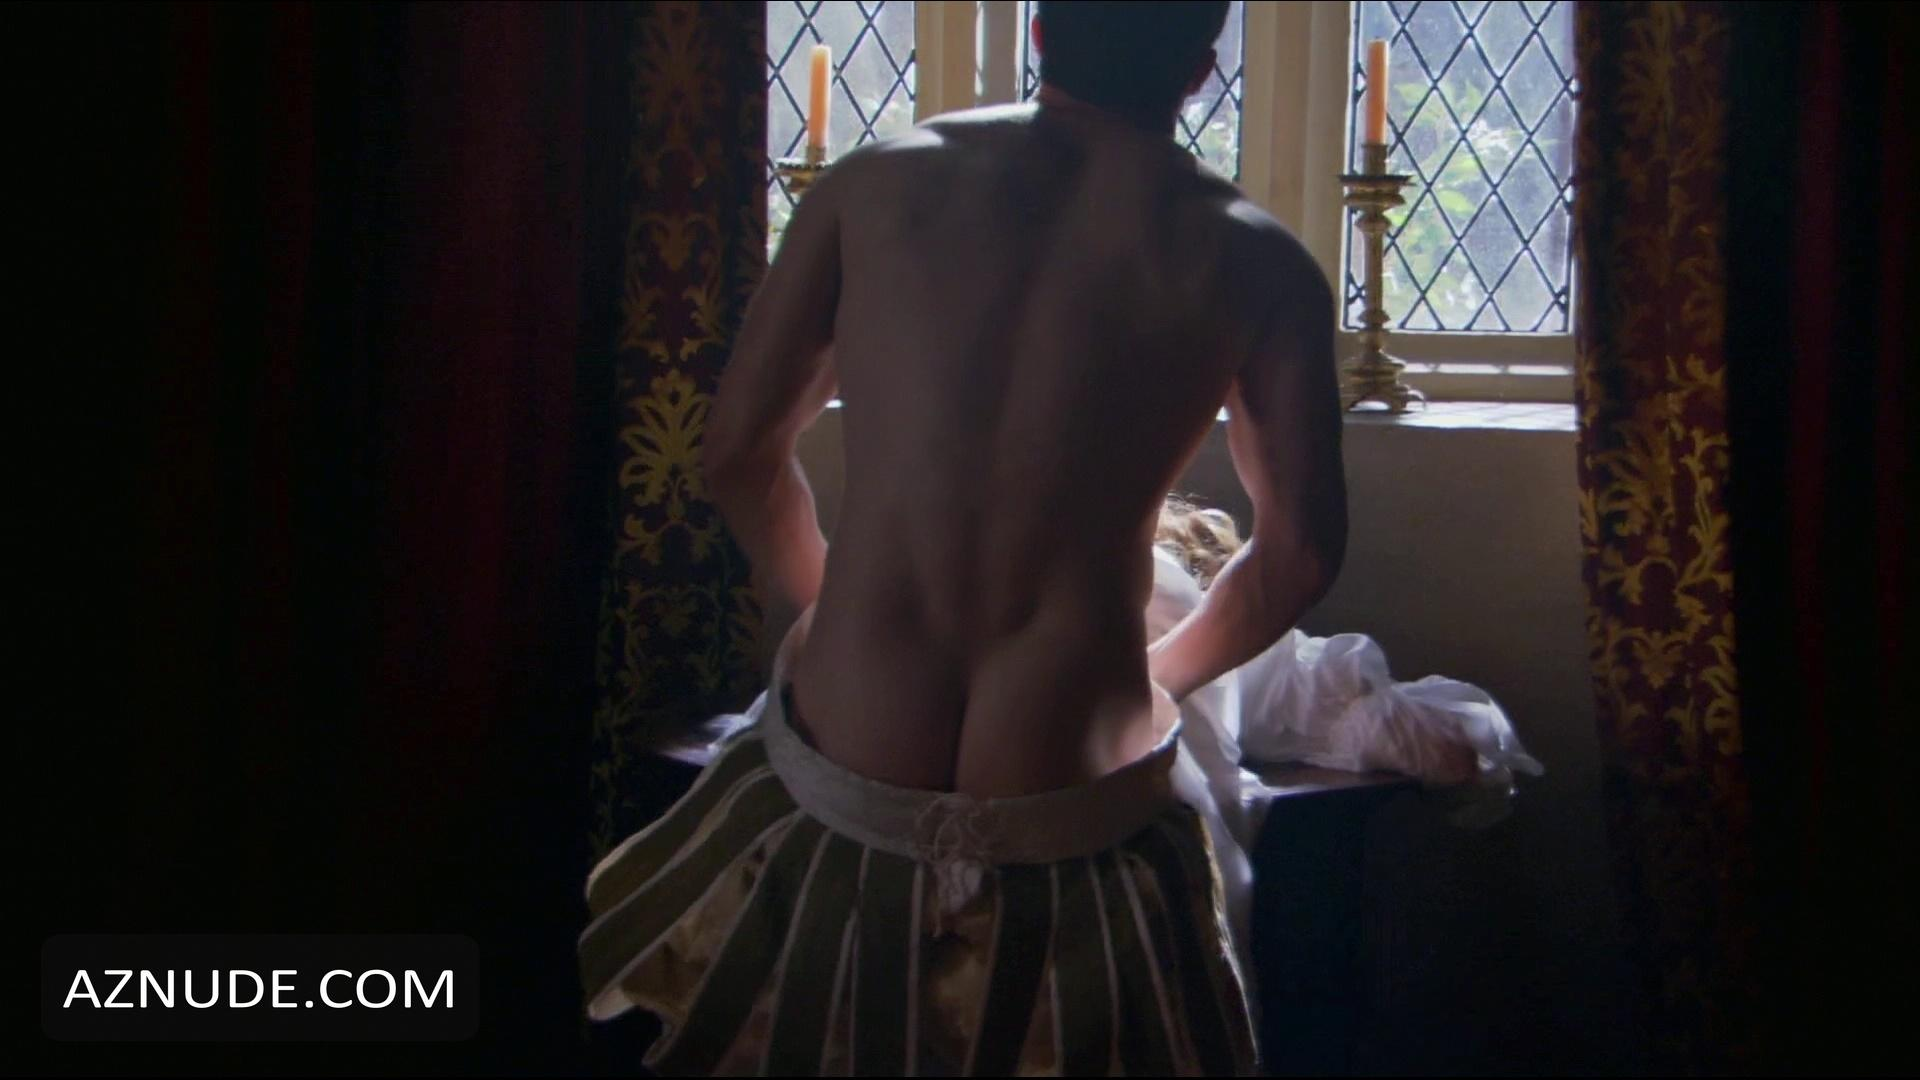 Everything you wanted to know about sex, tudor style